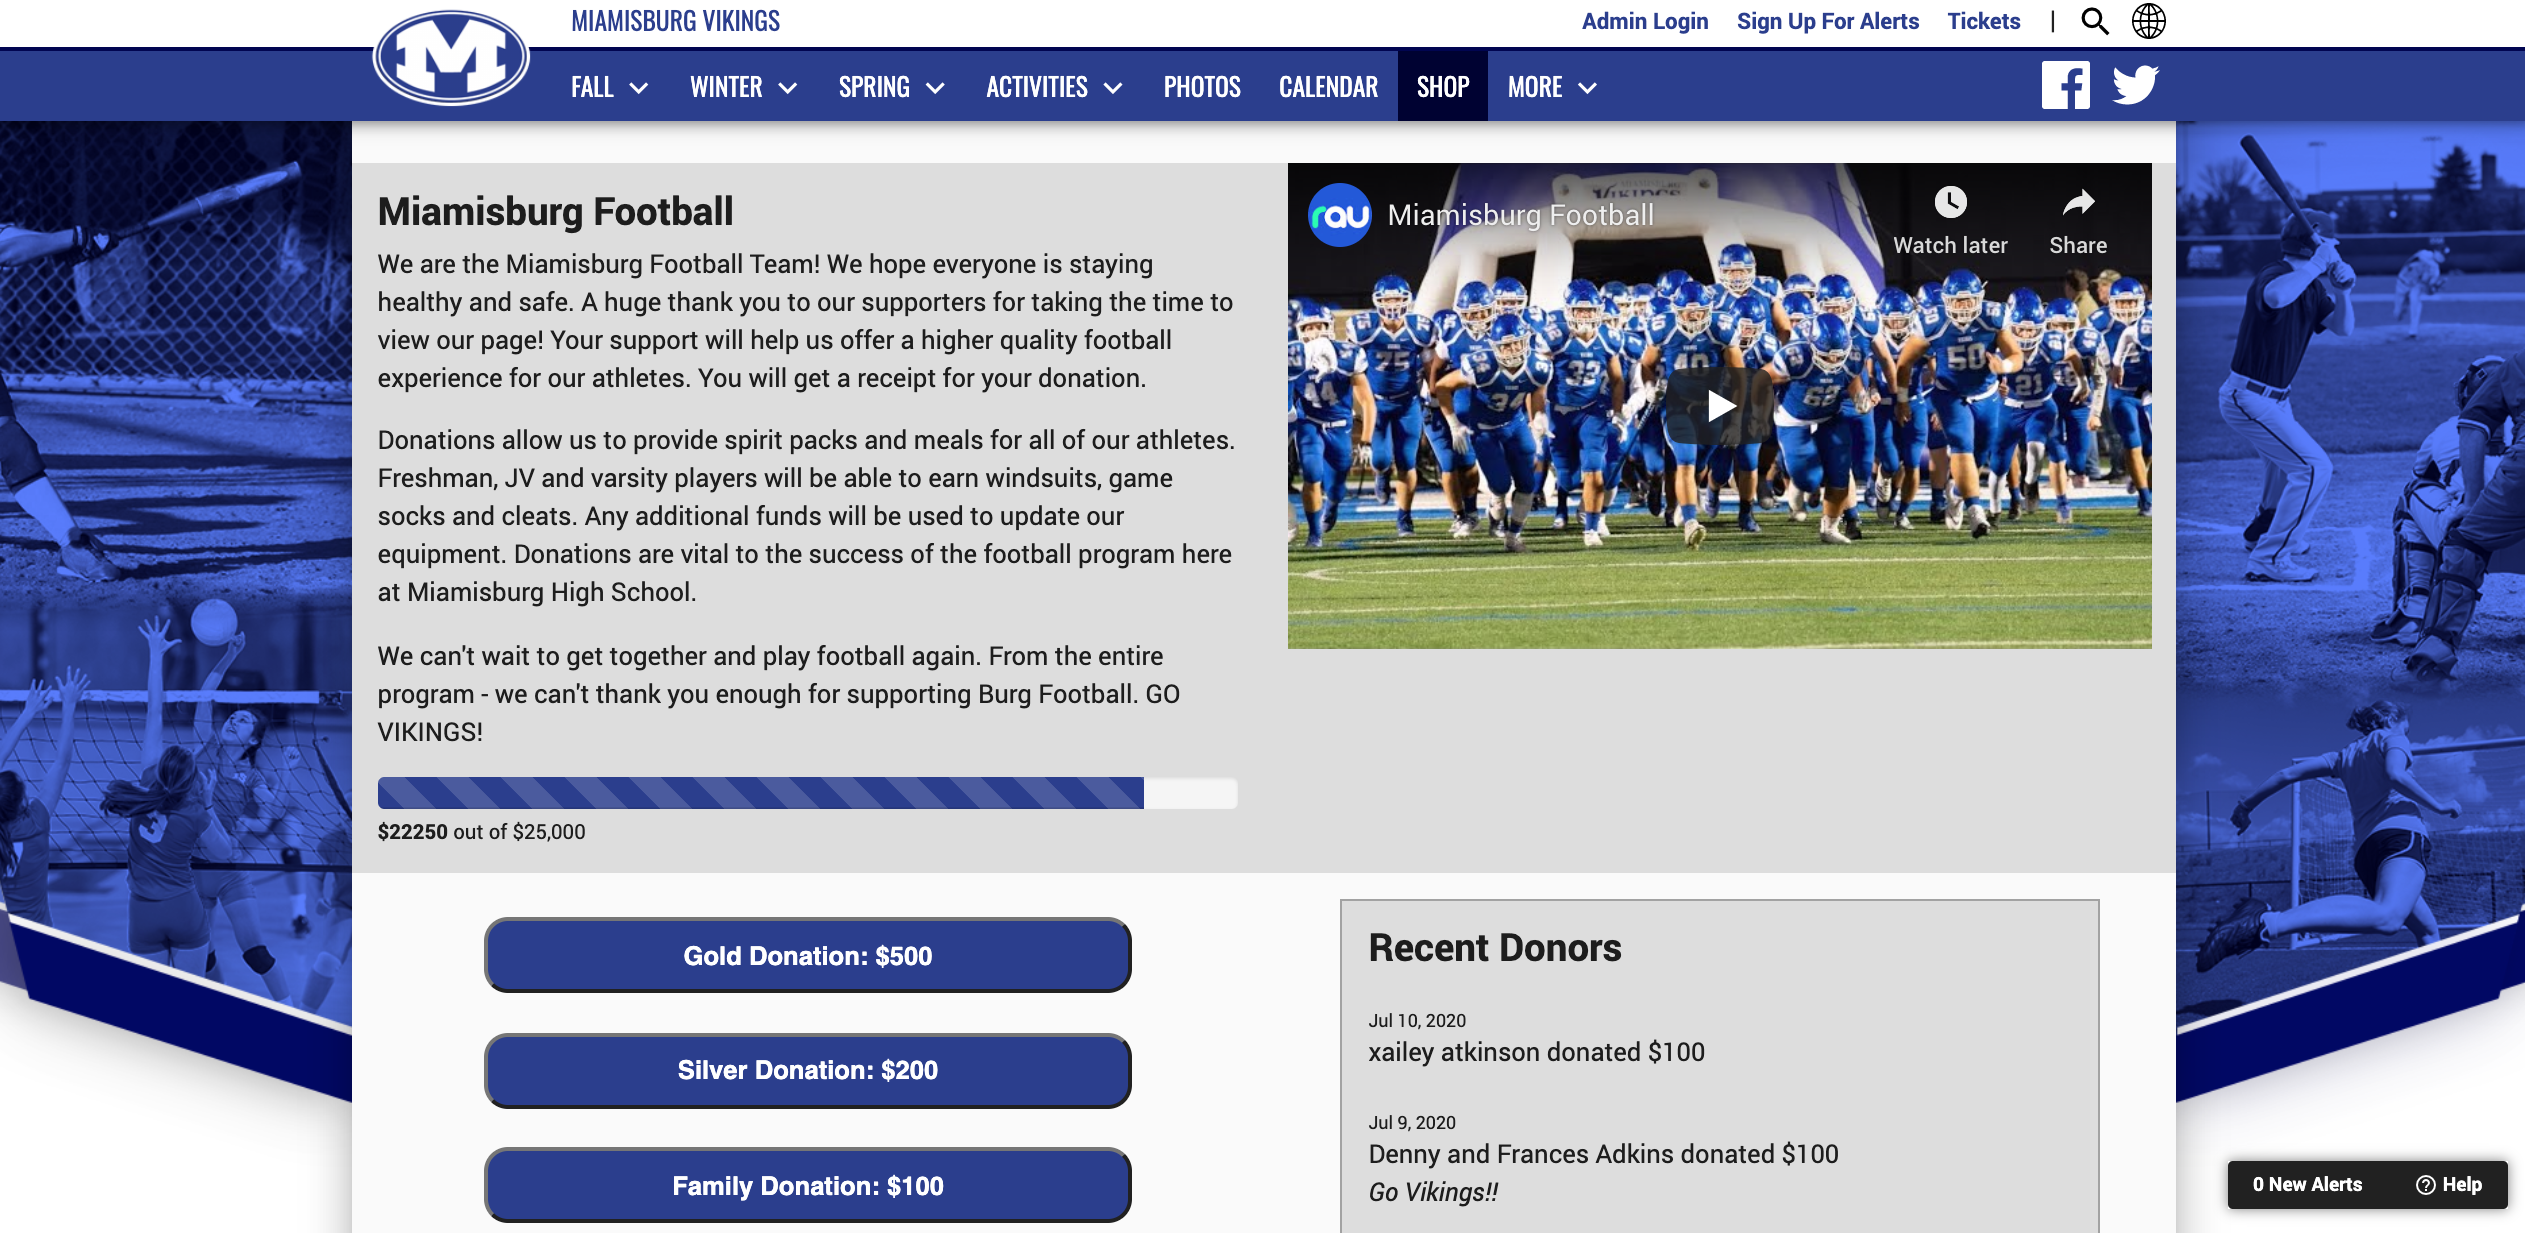 Miamisburg Varsity Football Fundraising Page with $22,000 raised for the football team from donors